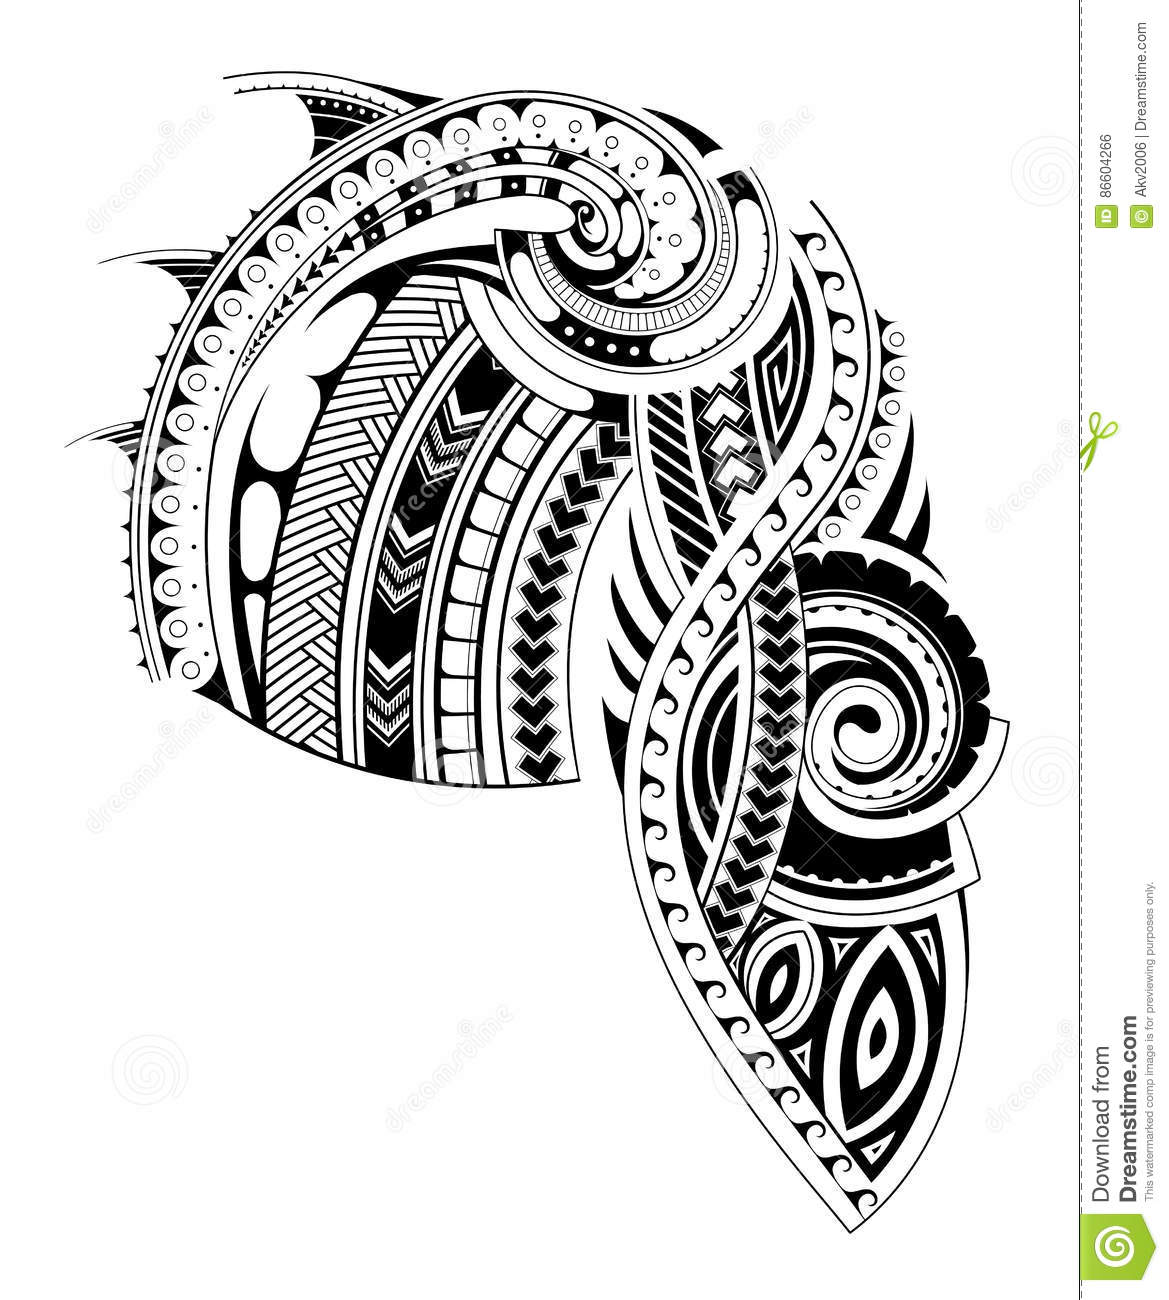 Tattoo Template | Maori Style Sleeve Tattoo Template Stock Vector Illustration Of